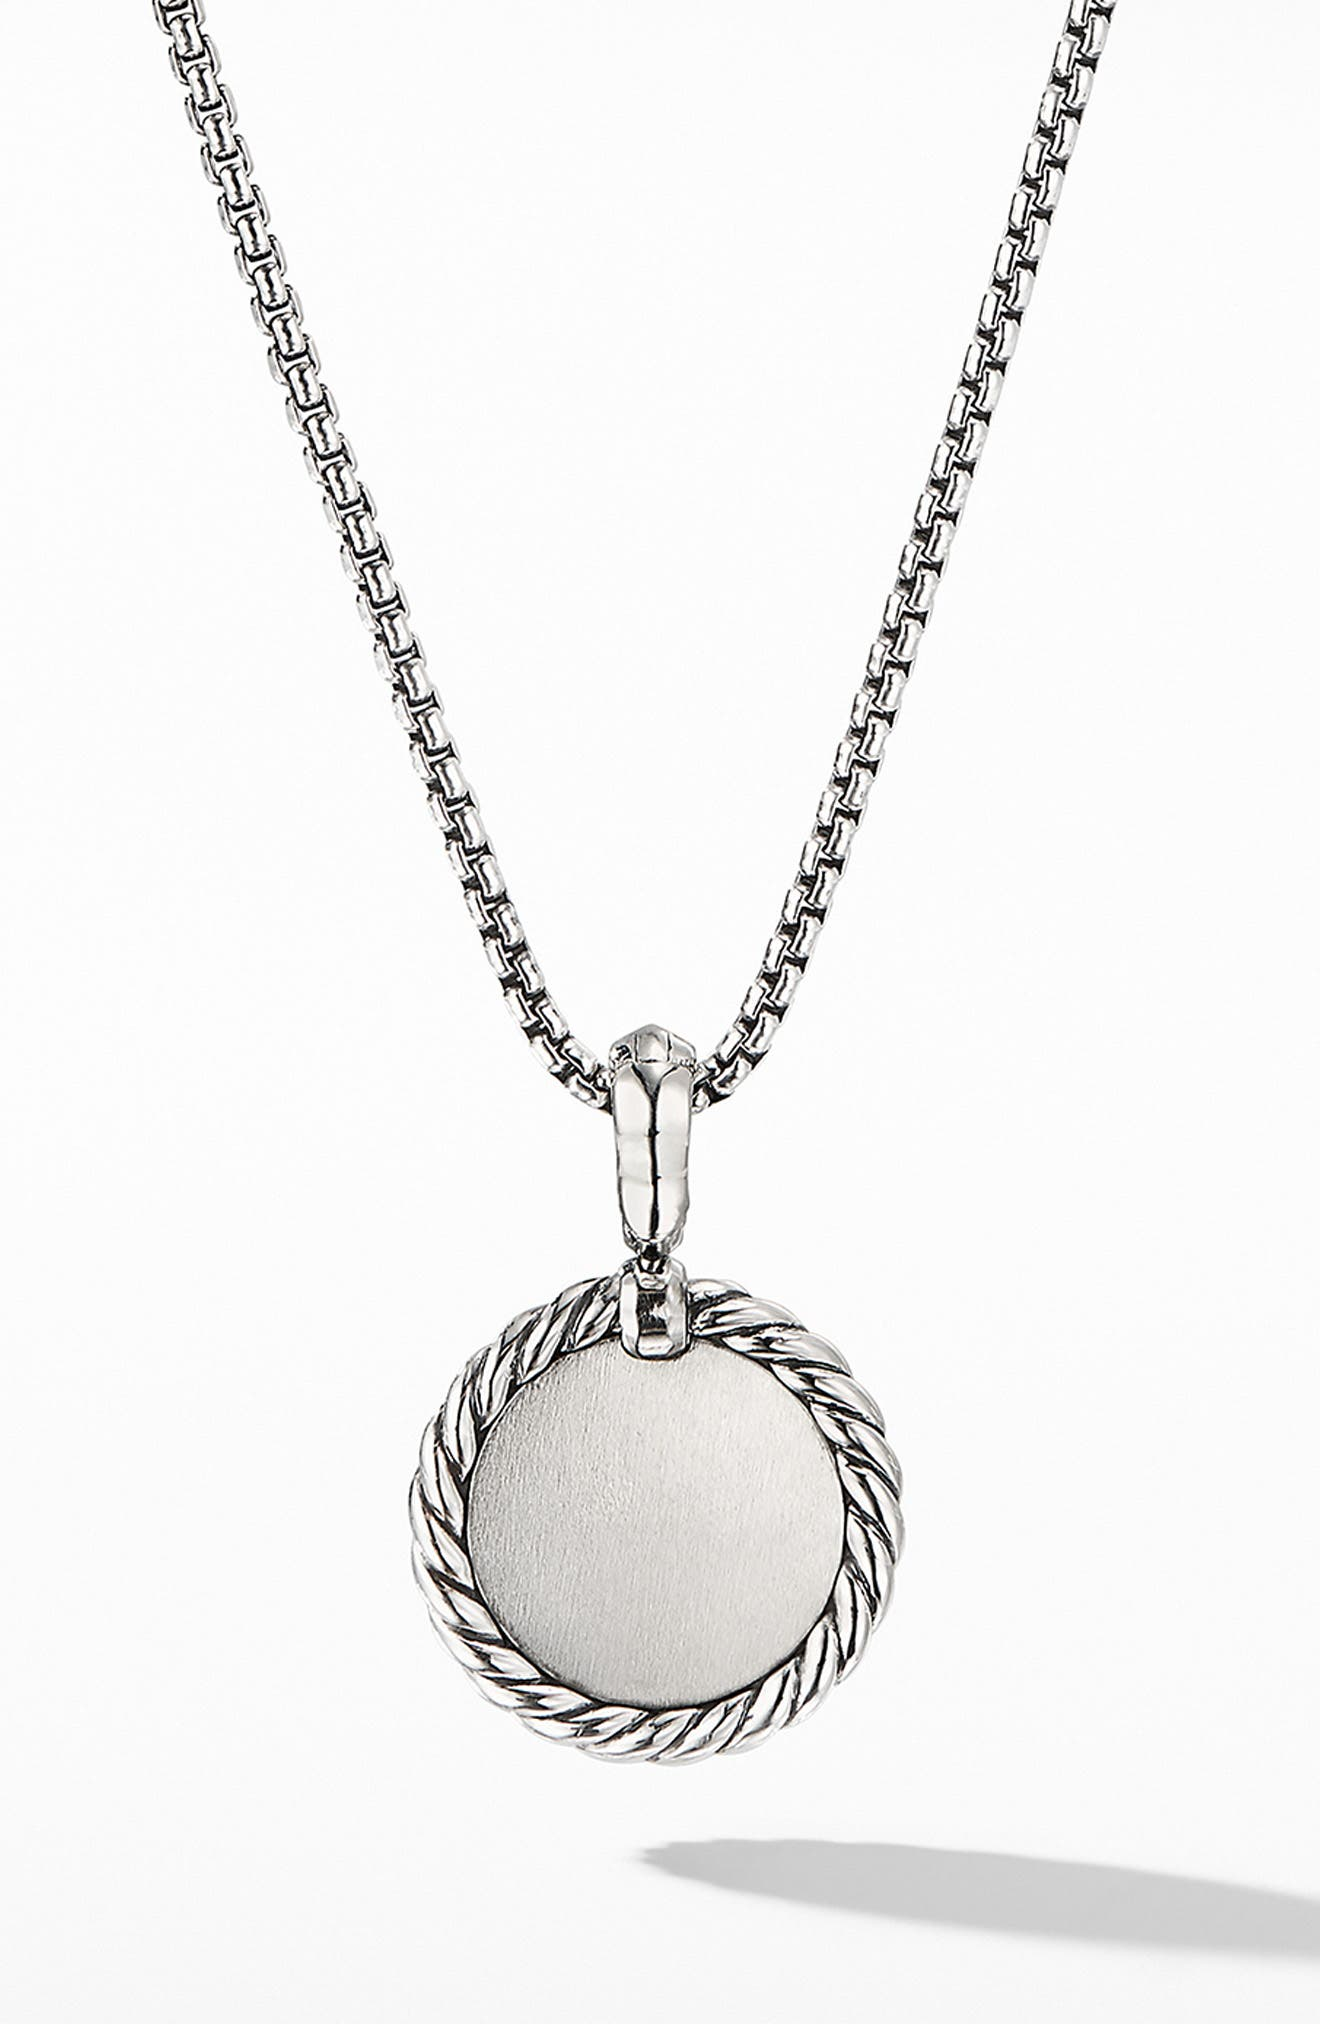 Initial Charm Necklace with Diamonds,                             Alternate thumbnail 2, color,                             SILVER/ DIAMOND-A